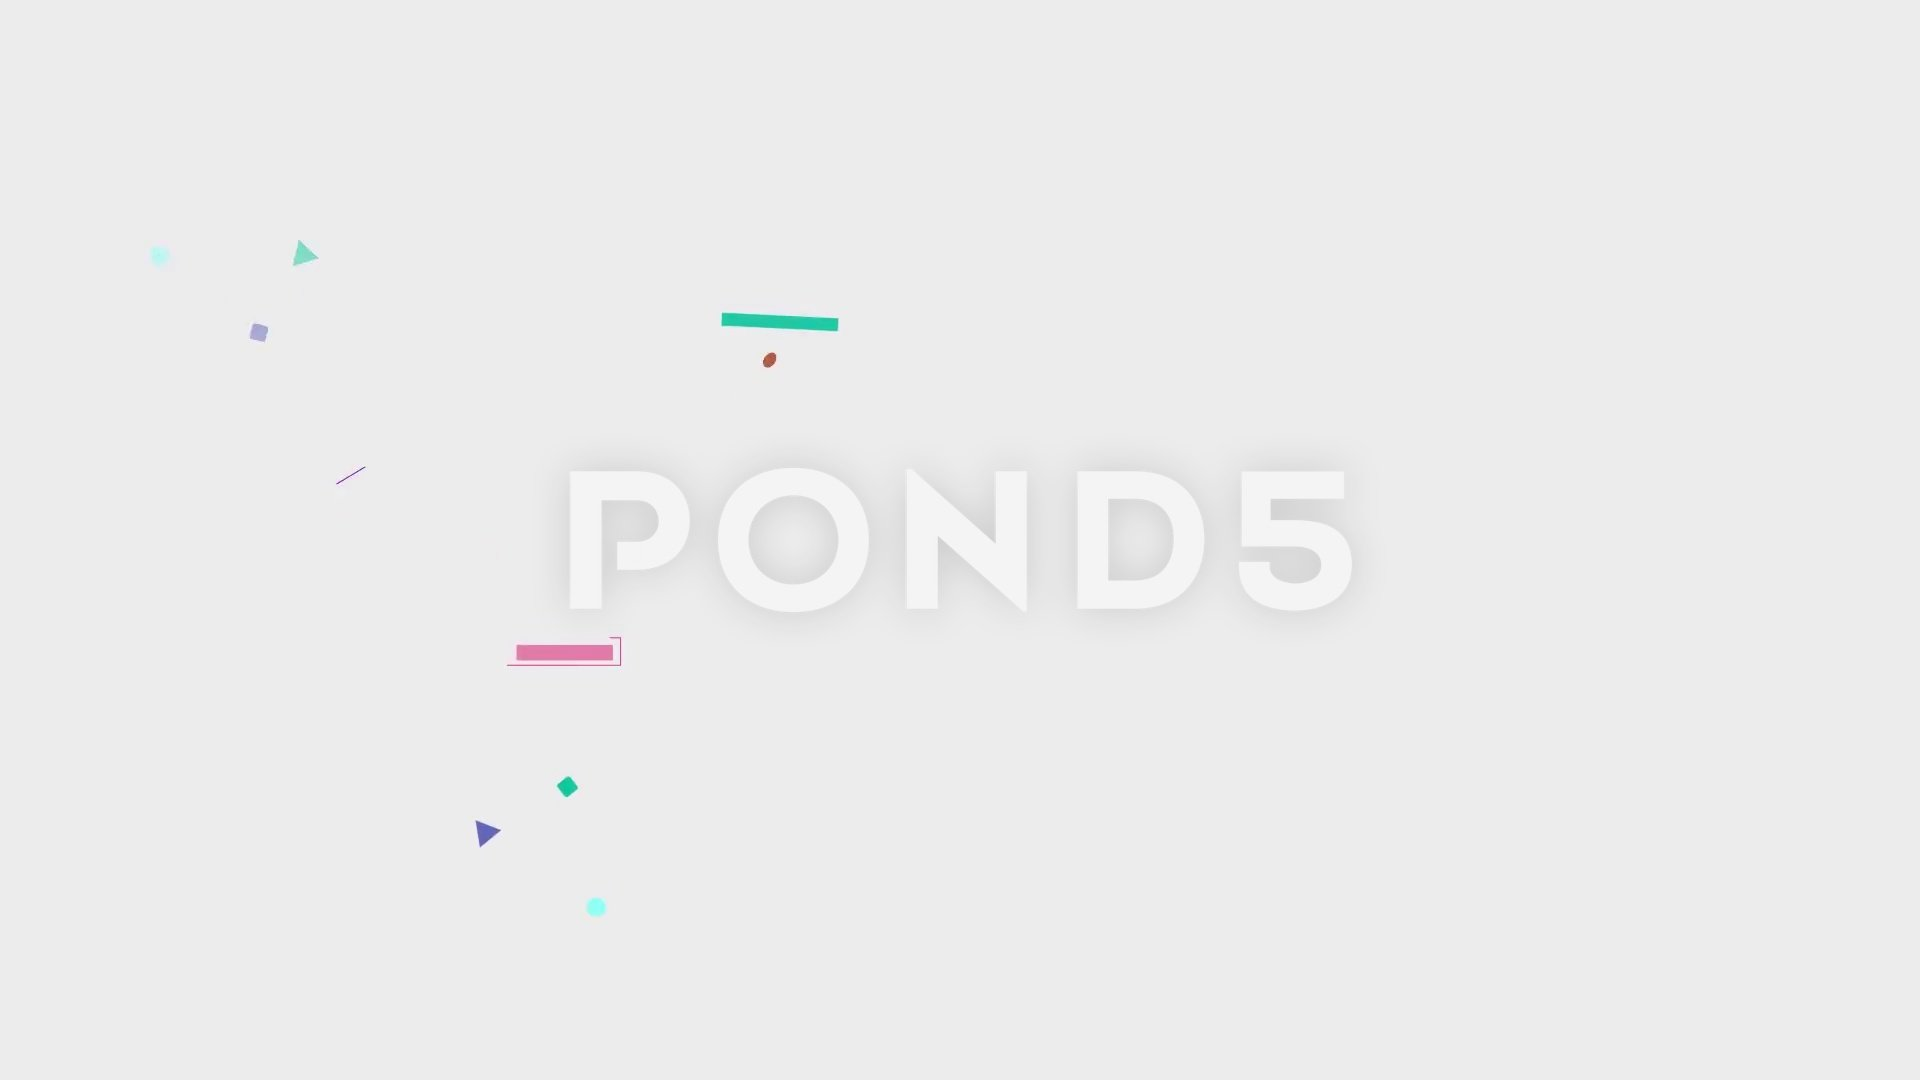 Download Pond5 Brief Particles Logo Display - After Effects Project